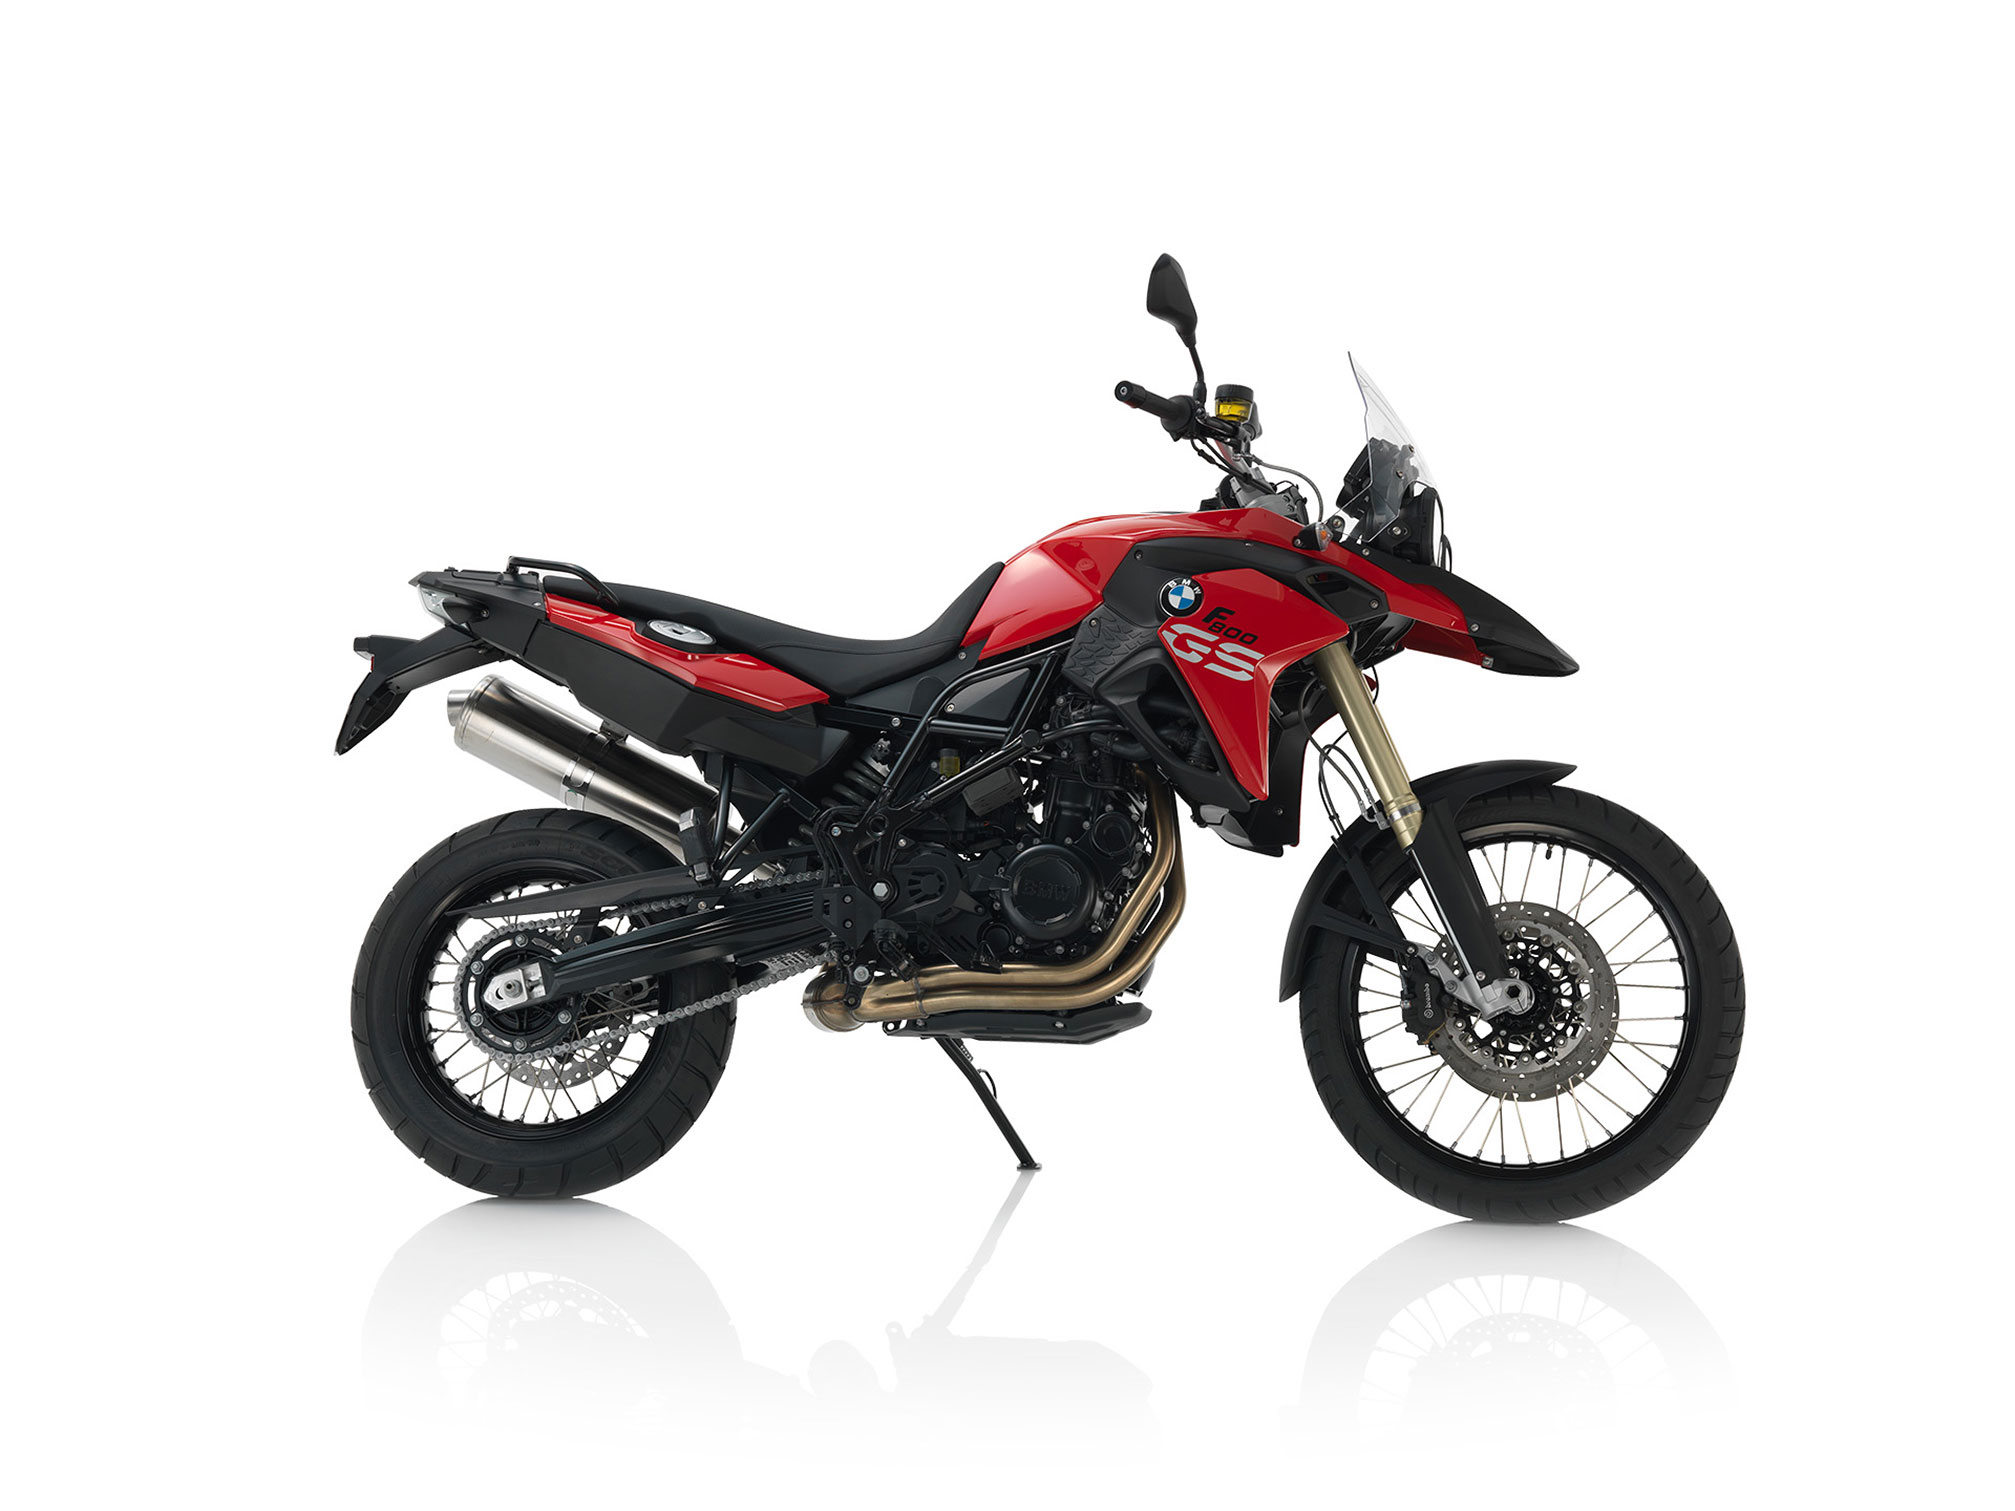 BMW F800 GS Motorcycle and scooter rentals in Madrid (Spain)